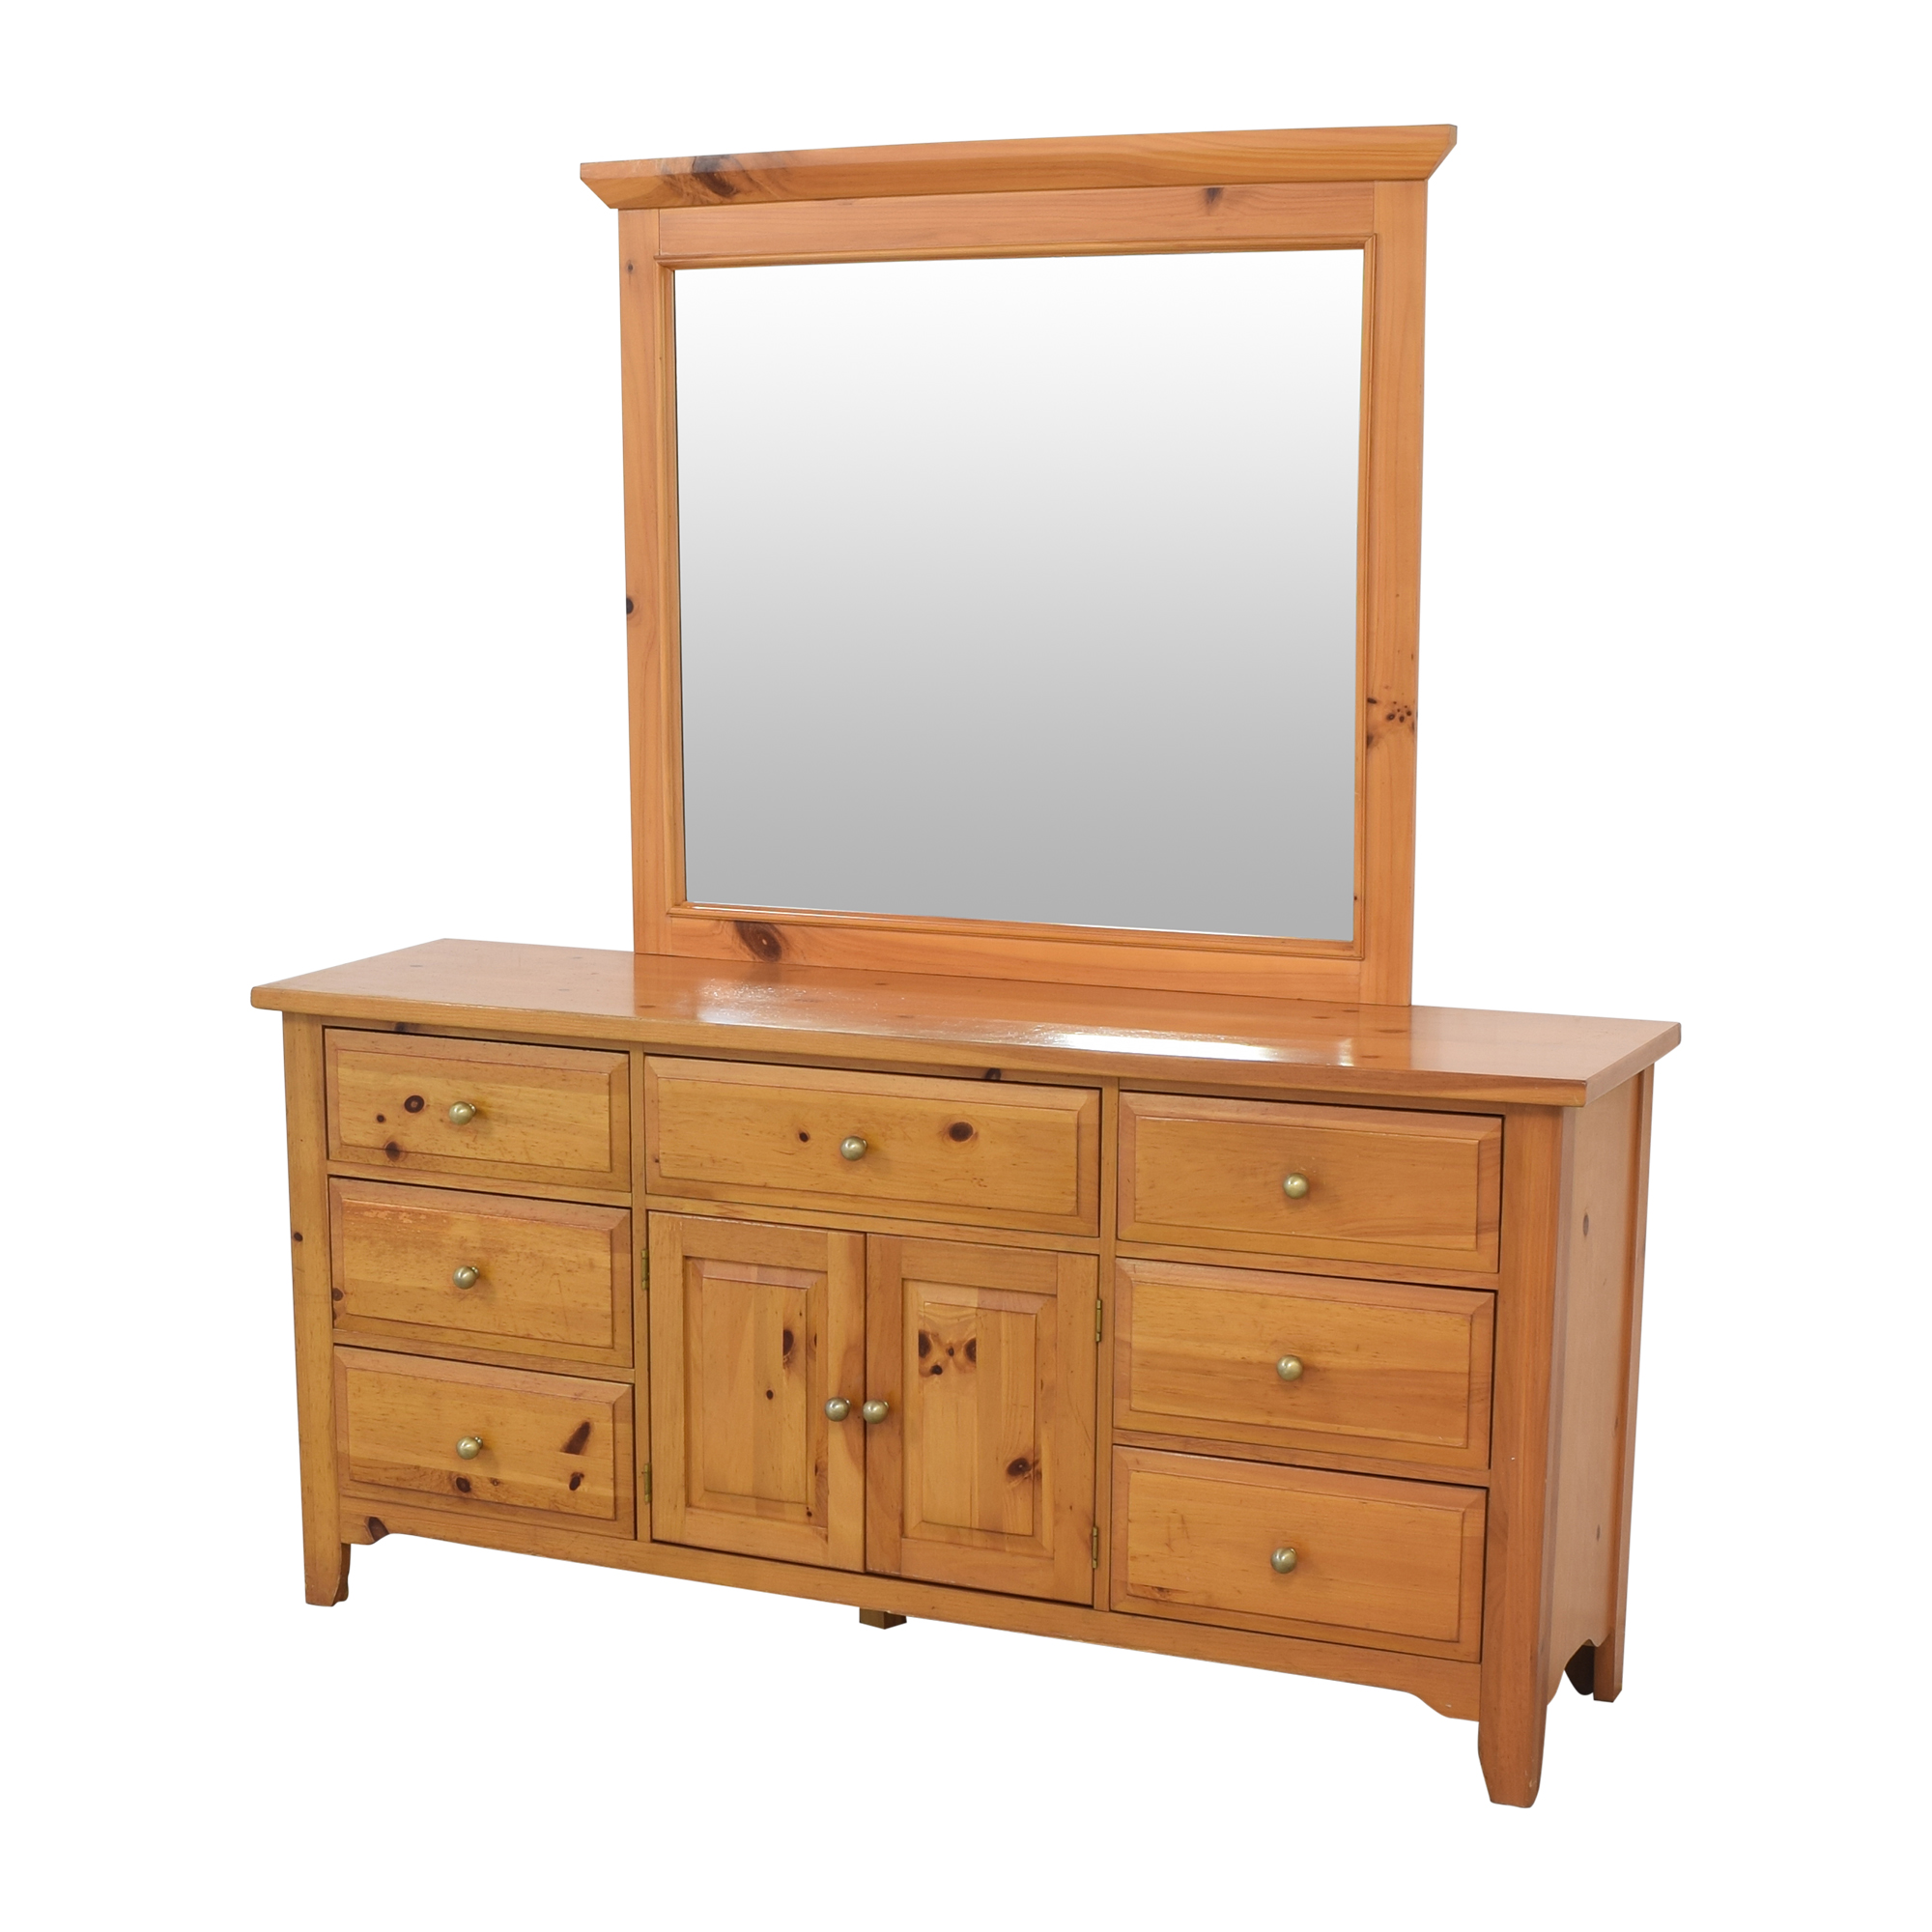 Broyhill Furniture Broyhill Shaker Style Dresser and Mirror second hand